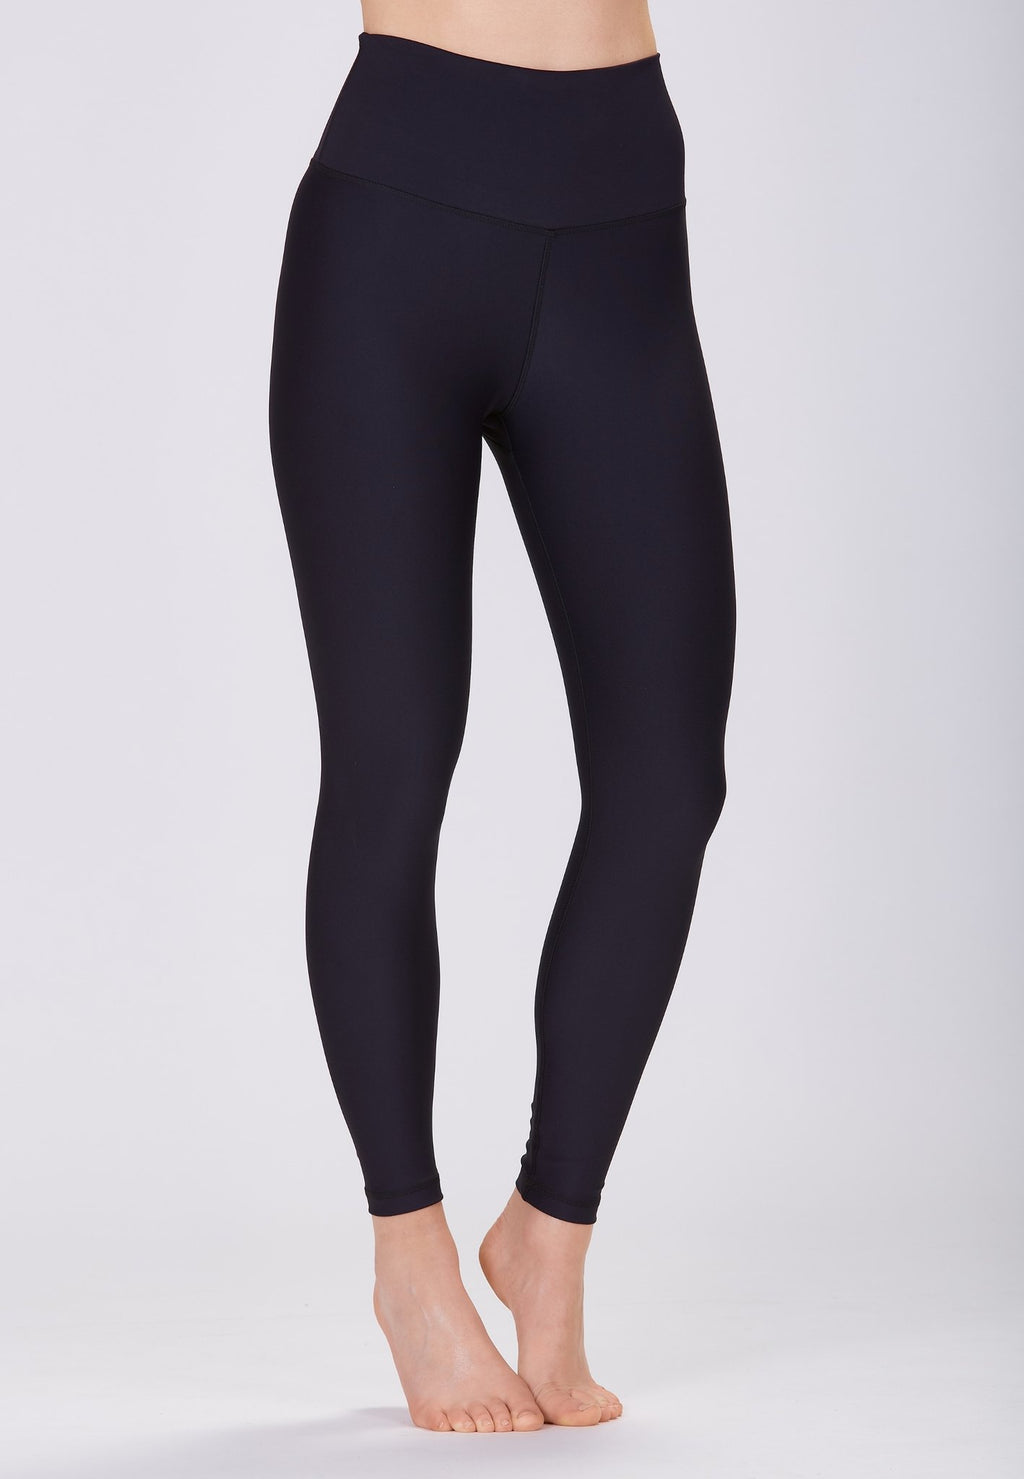 Classic High Waisted 7/8 Legging - Black